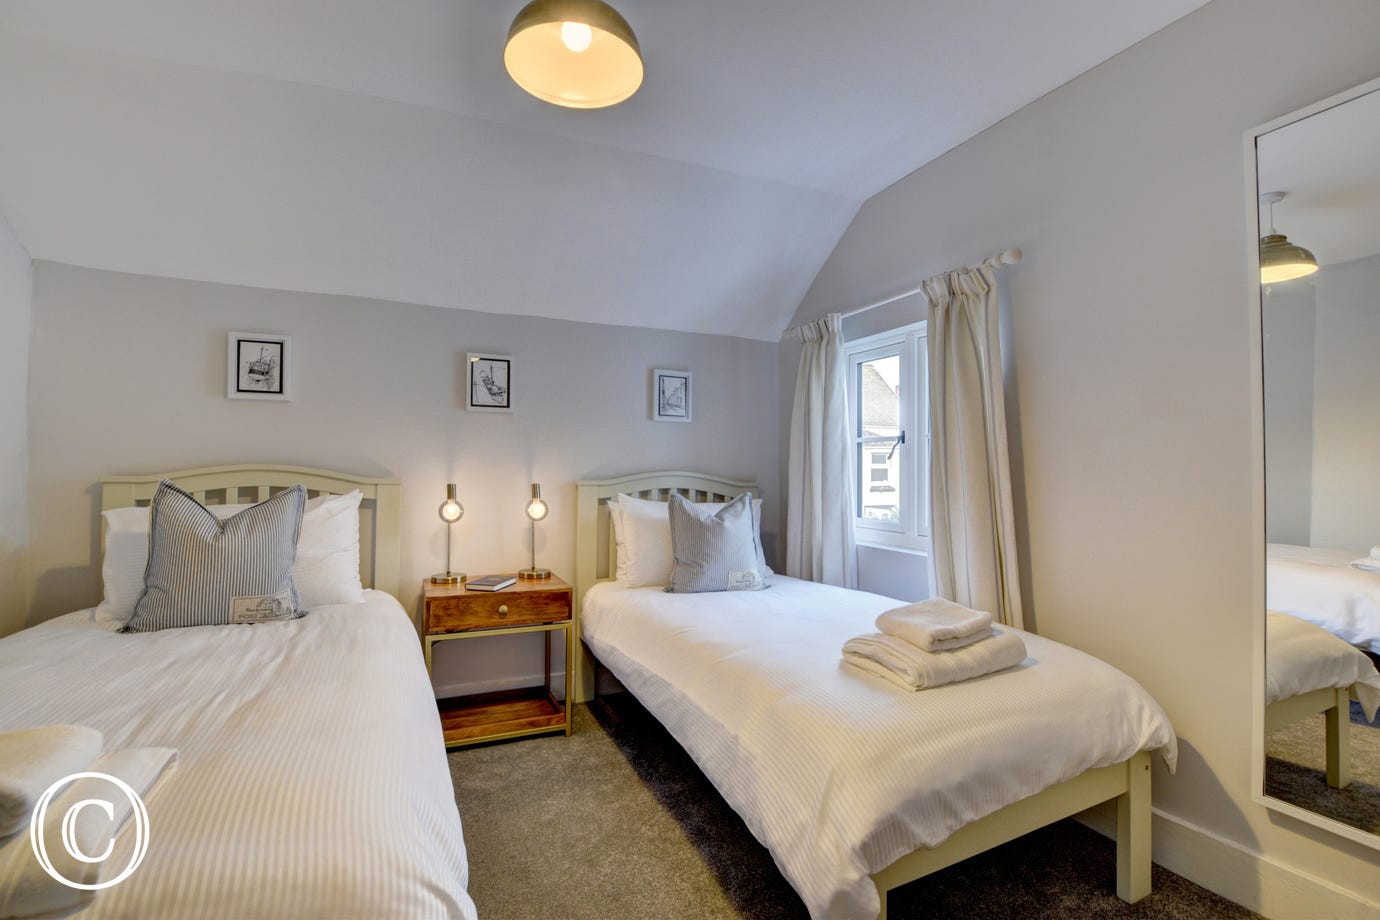 The cosy twin room is situated at the back of the property